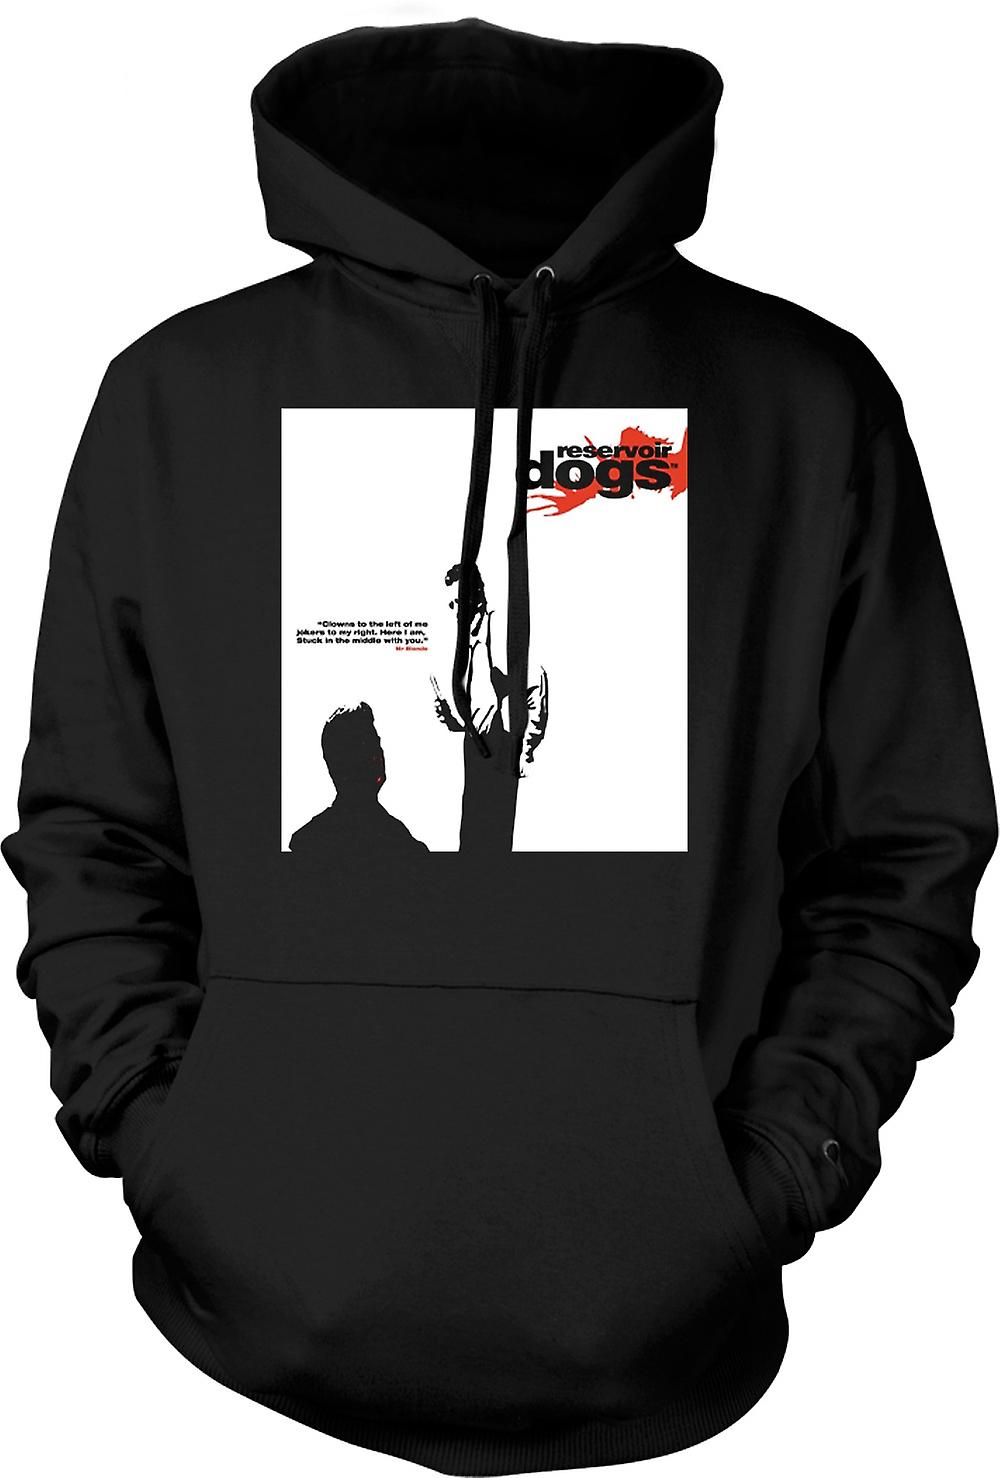 Mens Hoodie - Reservoir Dogs - Clowns To The Left